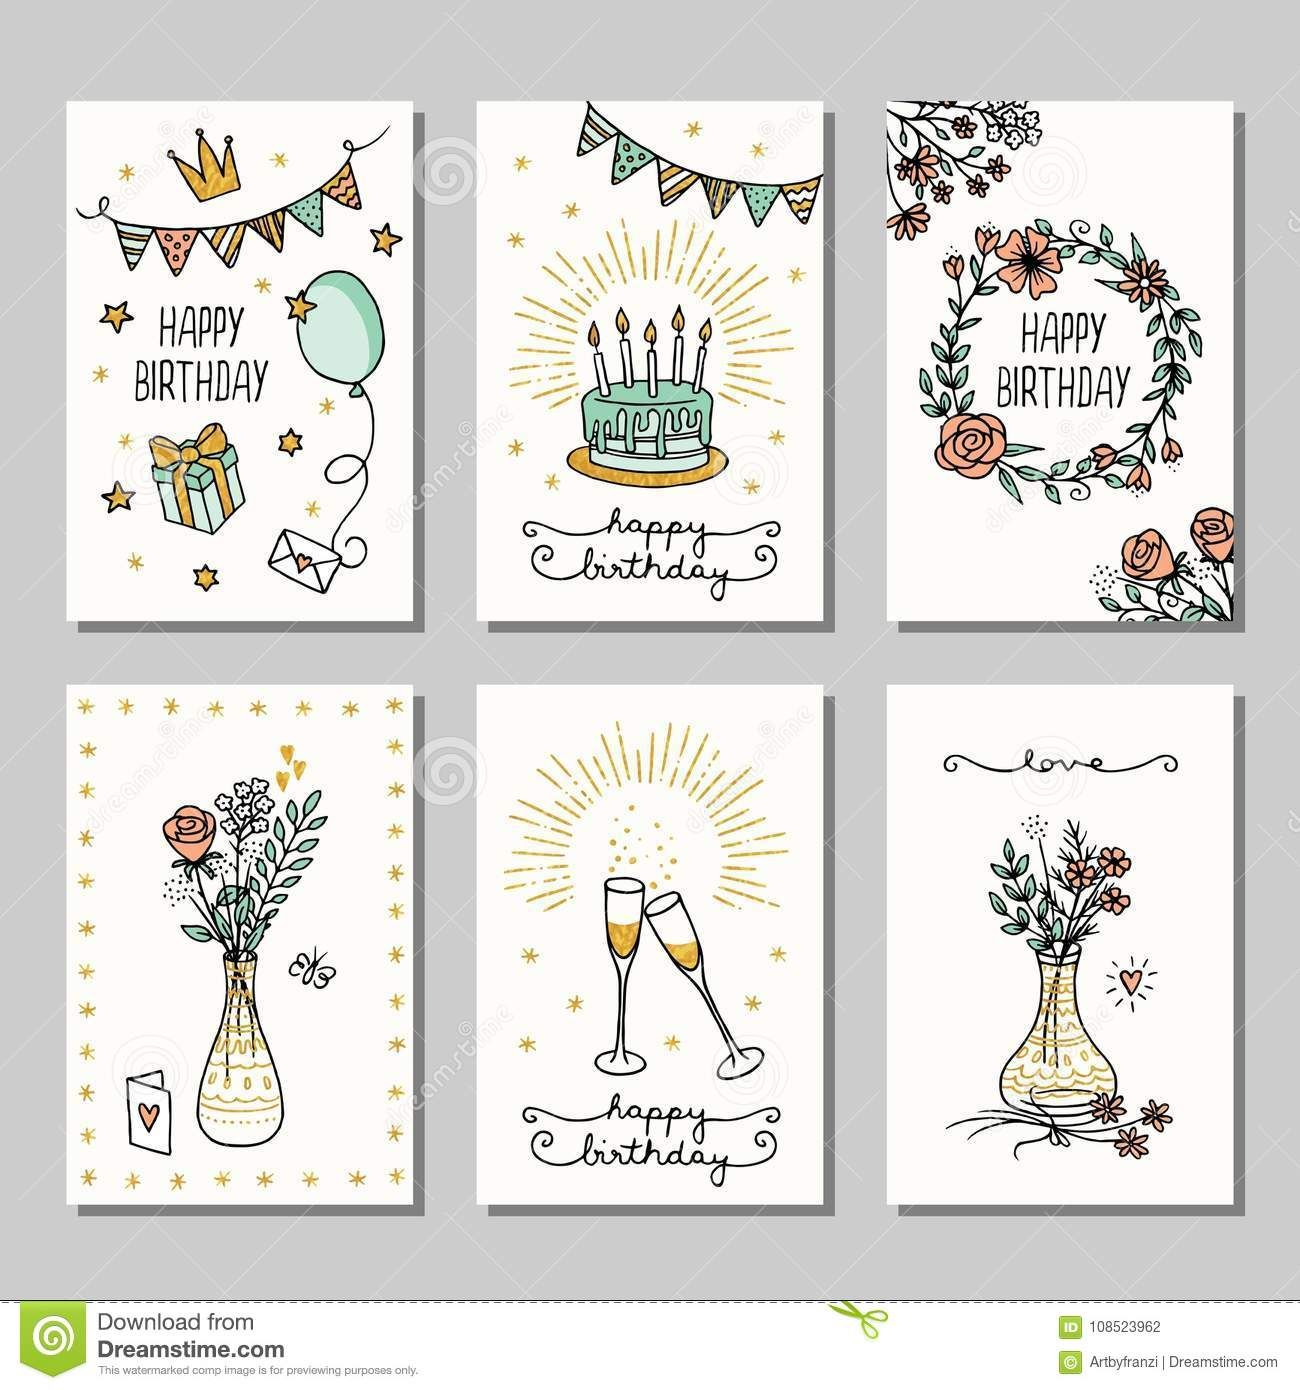 Happy Birthday Cards Birthday Card Drawing Happy Birthday Cards Handmade Happy Birthday Drawings